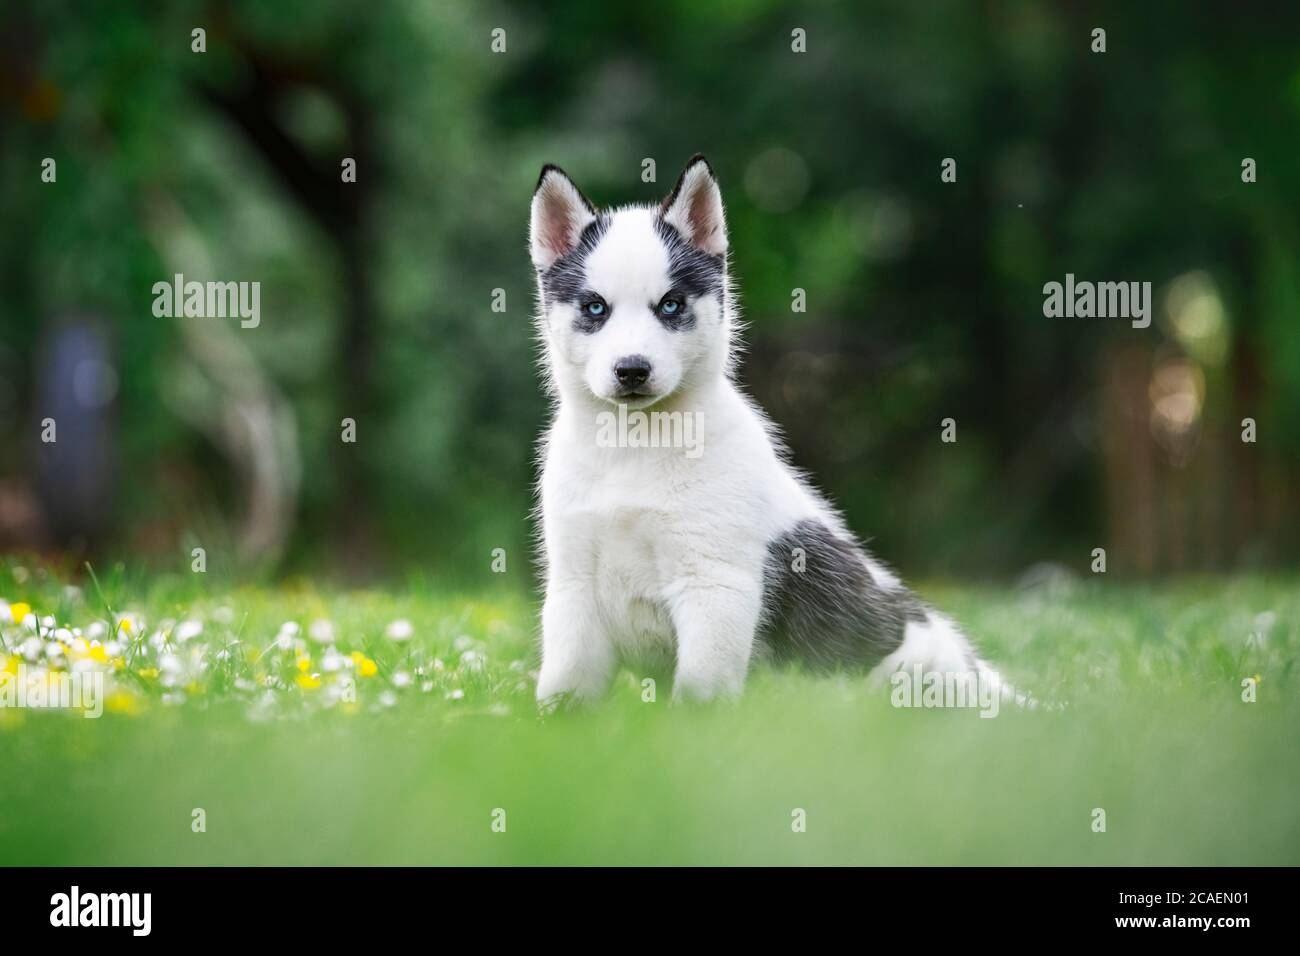 A small white dog puppy breed siberian husky with beautiful blue eyes in blooming spring garden. Dogs and pet photography Stock Photo